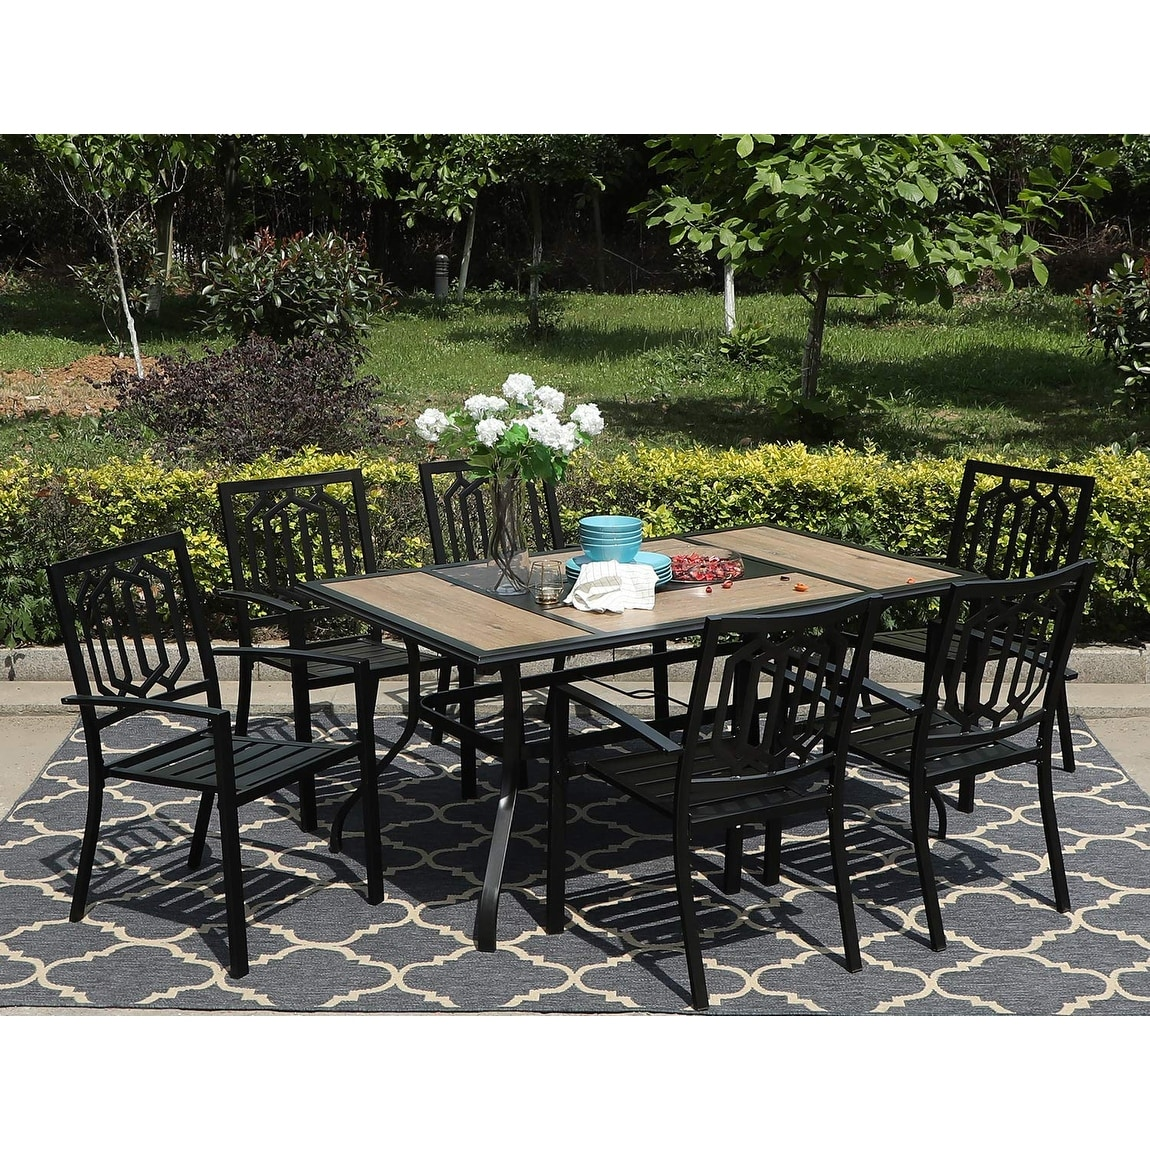 Sophia & William 122 Pieces Patio Dining Set Steel Outdoor Furniture Set with  122 Steel Garden Chairs and 12 Patio Umbrella Table